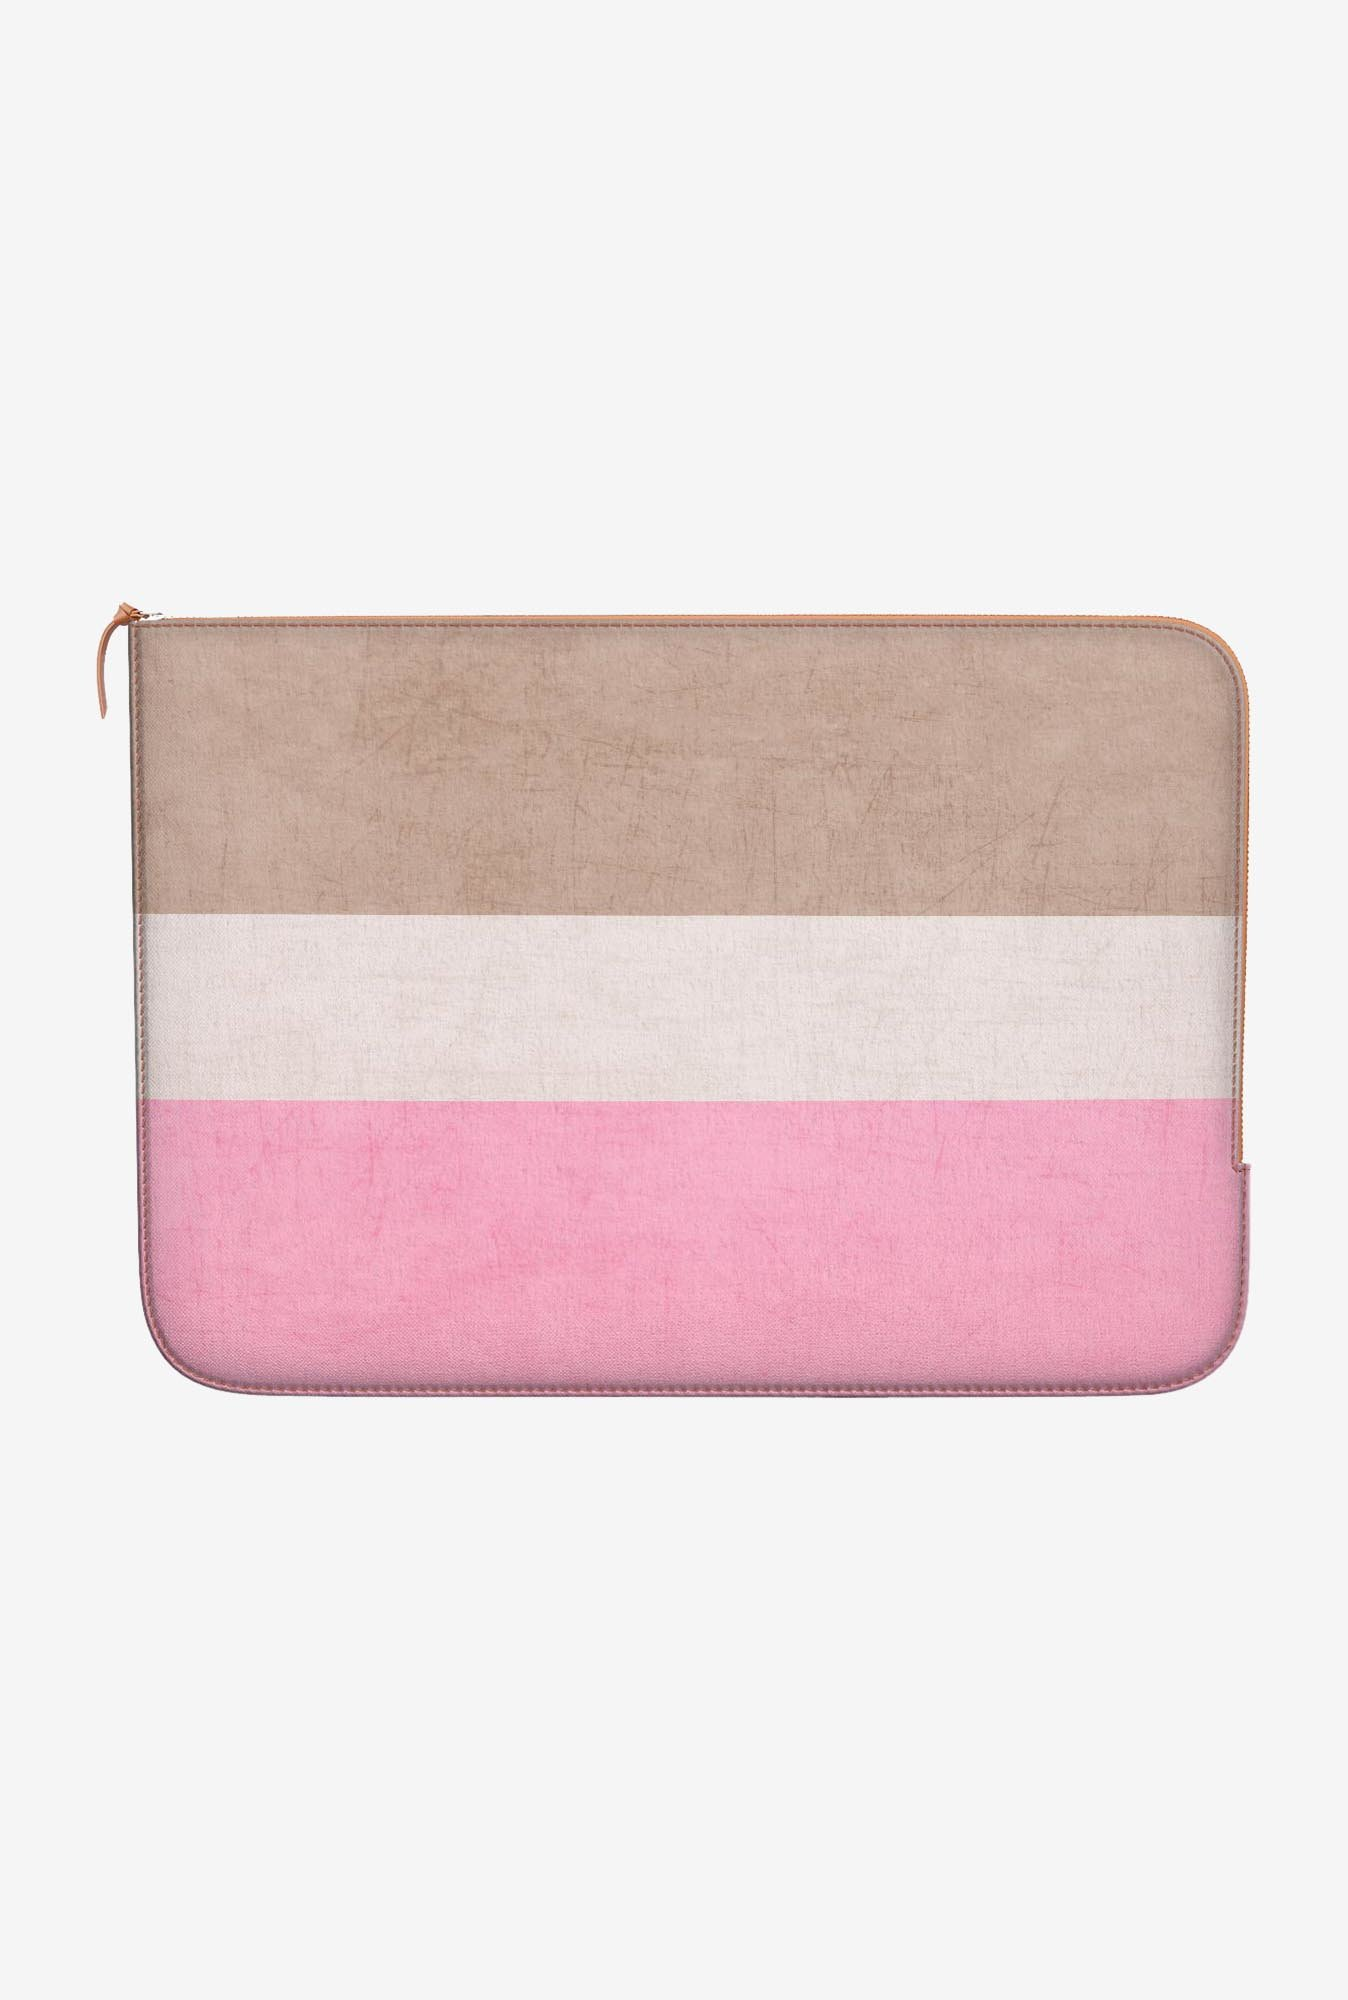 "DailyObjects Neapolitan Macbook Pro 15"" Zippered Sleeve"